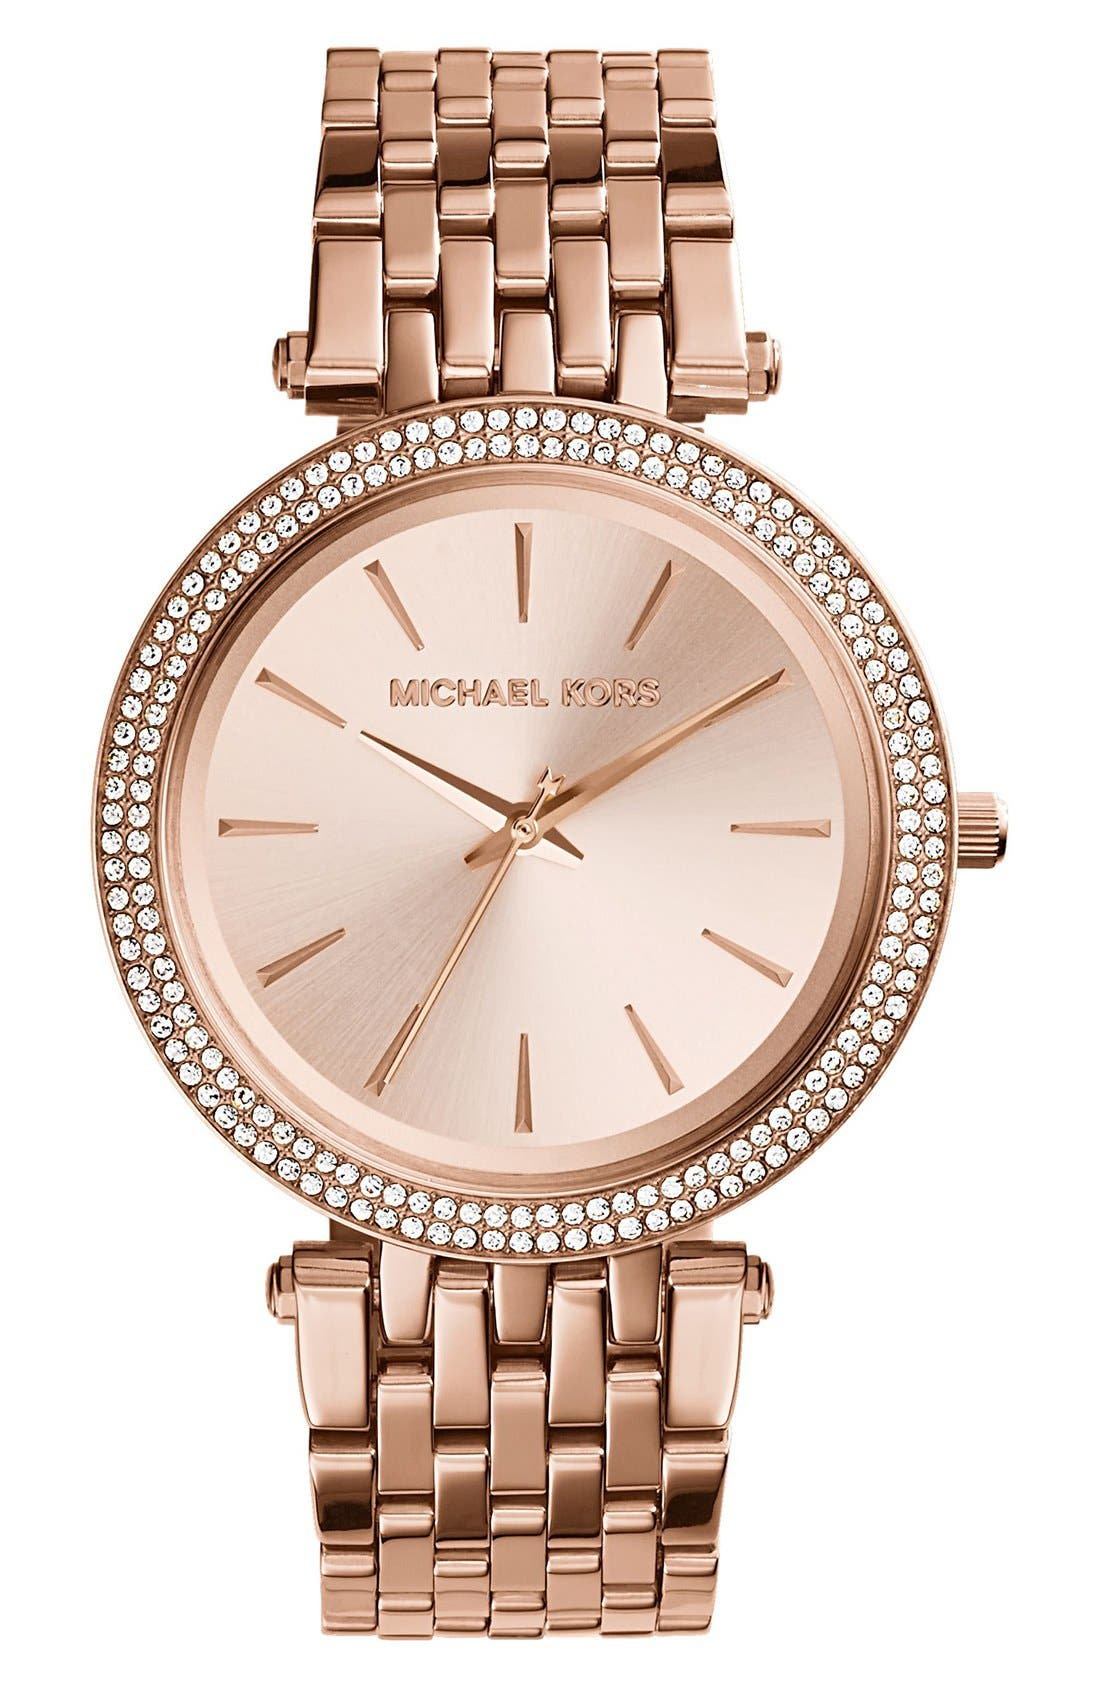 MICHAEL KORS Darci Round Bracelet Watch, 39mm